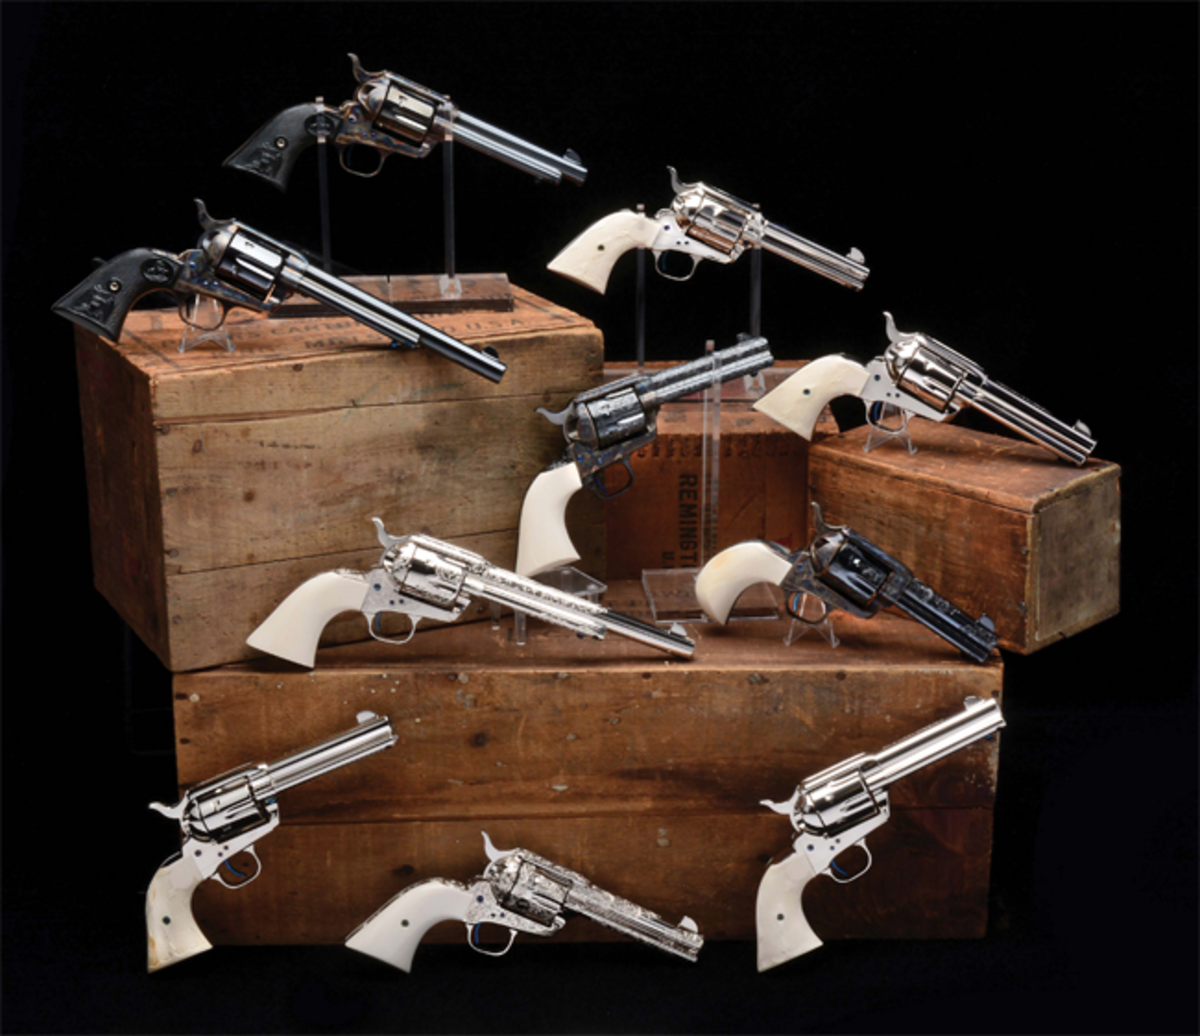 Lot of 10 consecutively serial-numbered (timeframe 1988-1995), unfired Colt custom gun shop single-action army revolvers in custom display case. Only known collection of its type.